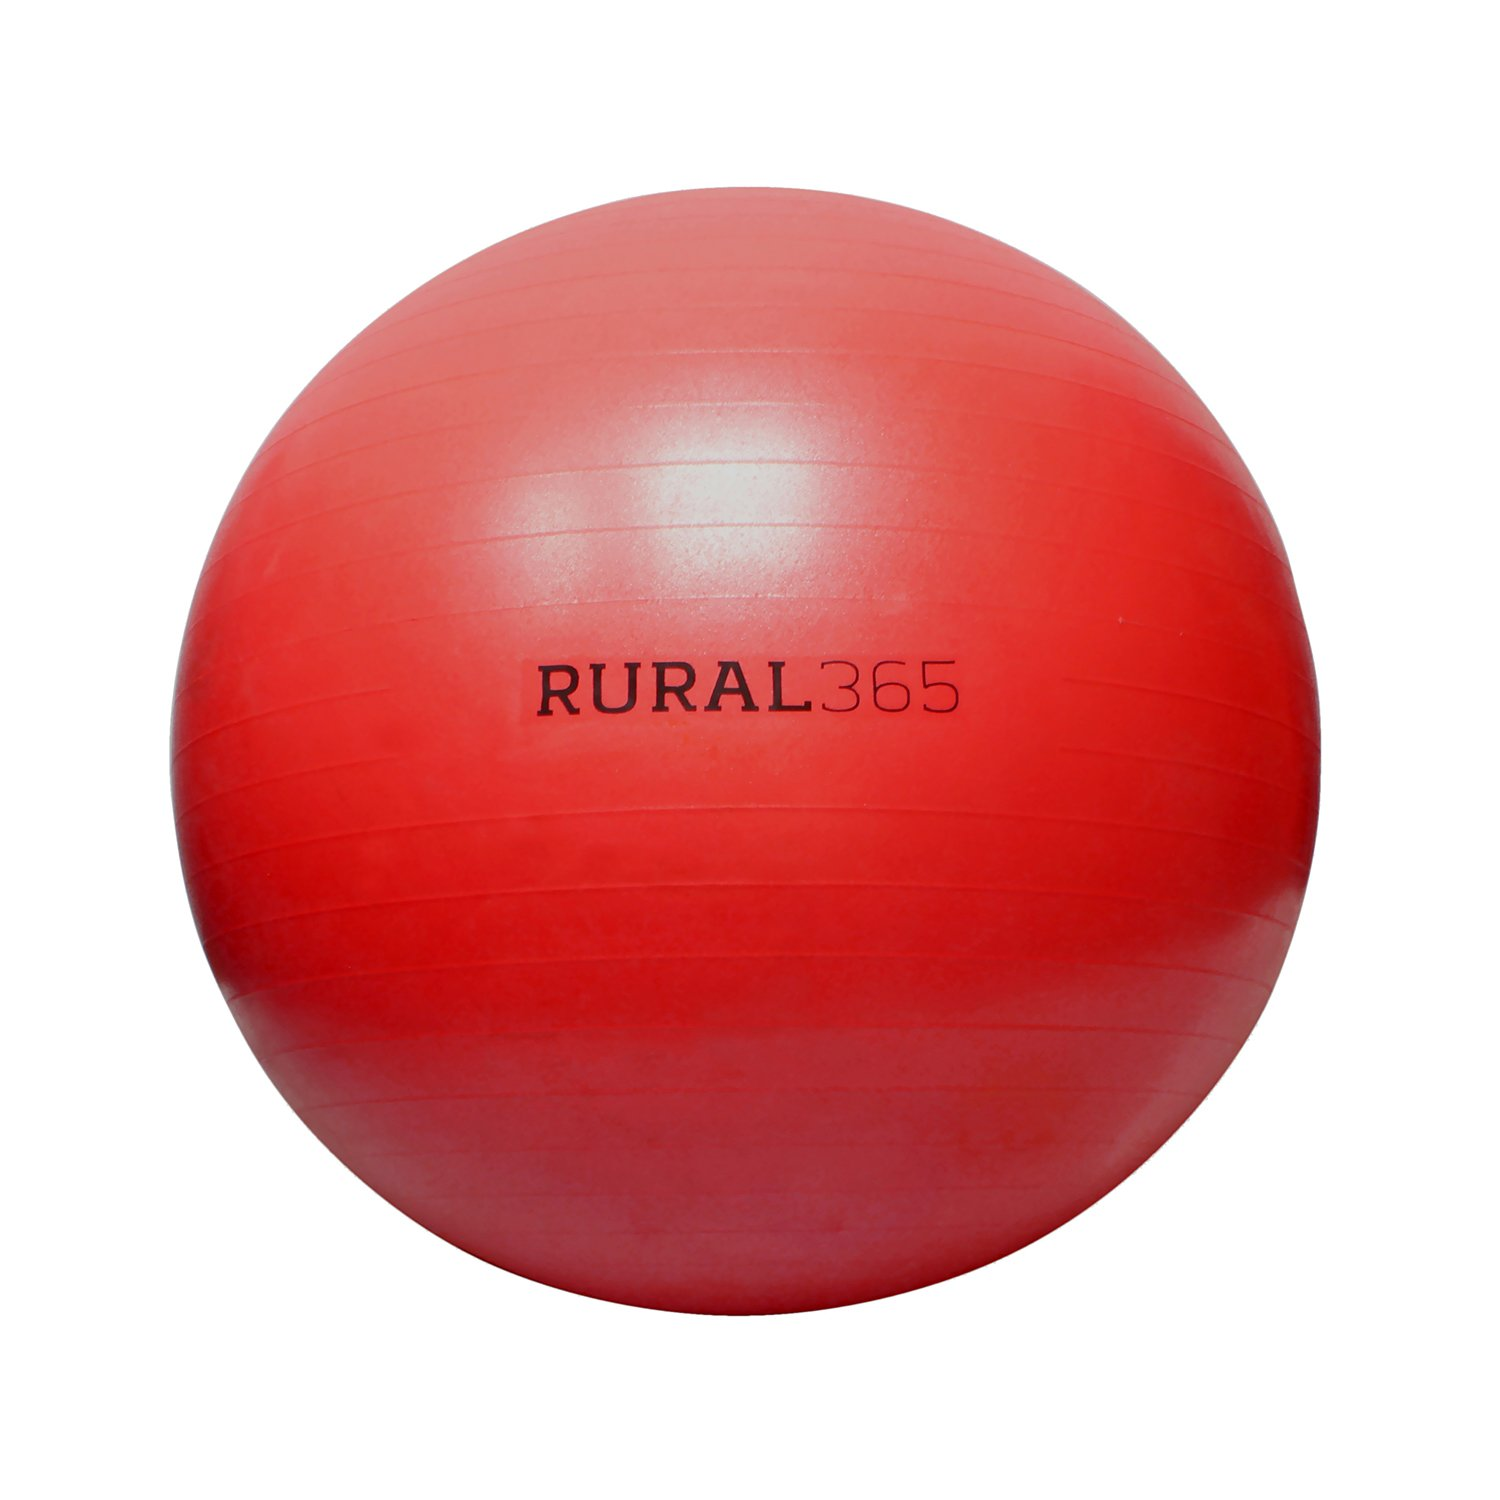 Rural365 | Large Horse Ball Toy in Red, 40'' Inch Ball Anti-Burst Giant Horse Ball - Horse Soccer Ball, Pump Included by Rural365